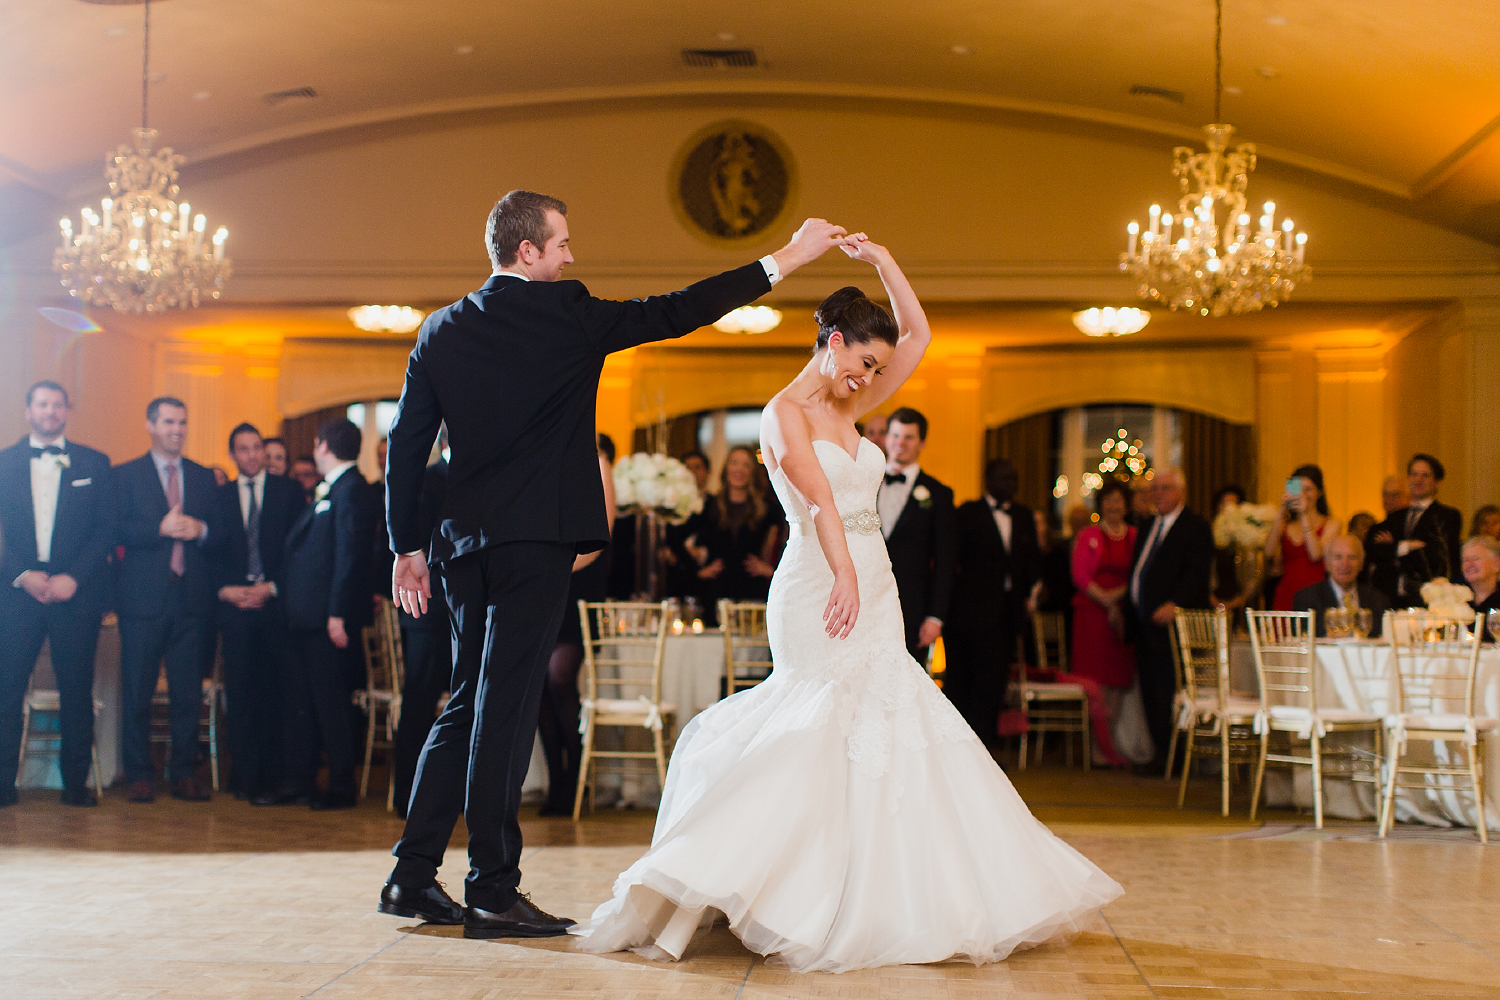 Omni Parker Hotel Photography Packages Pricing